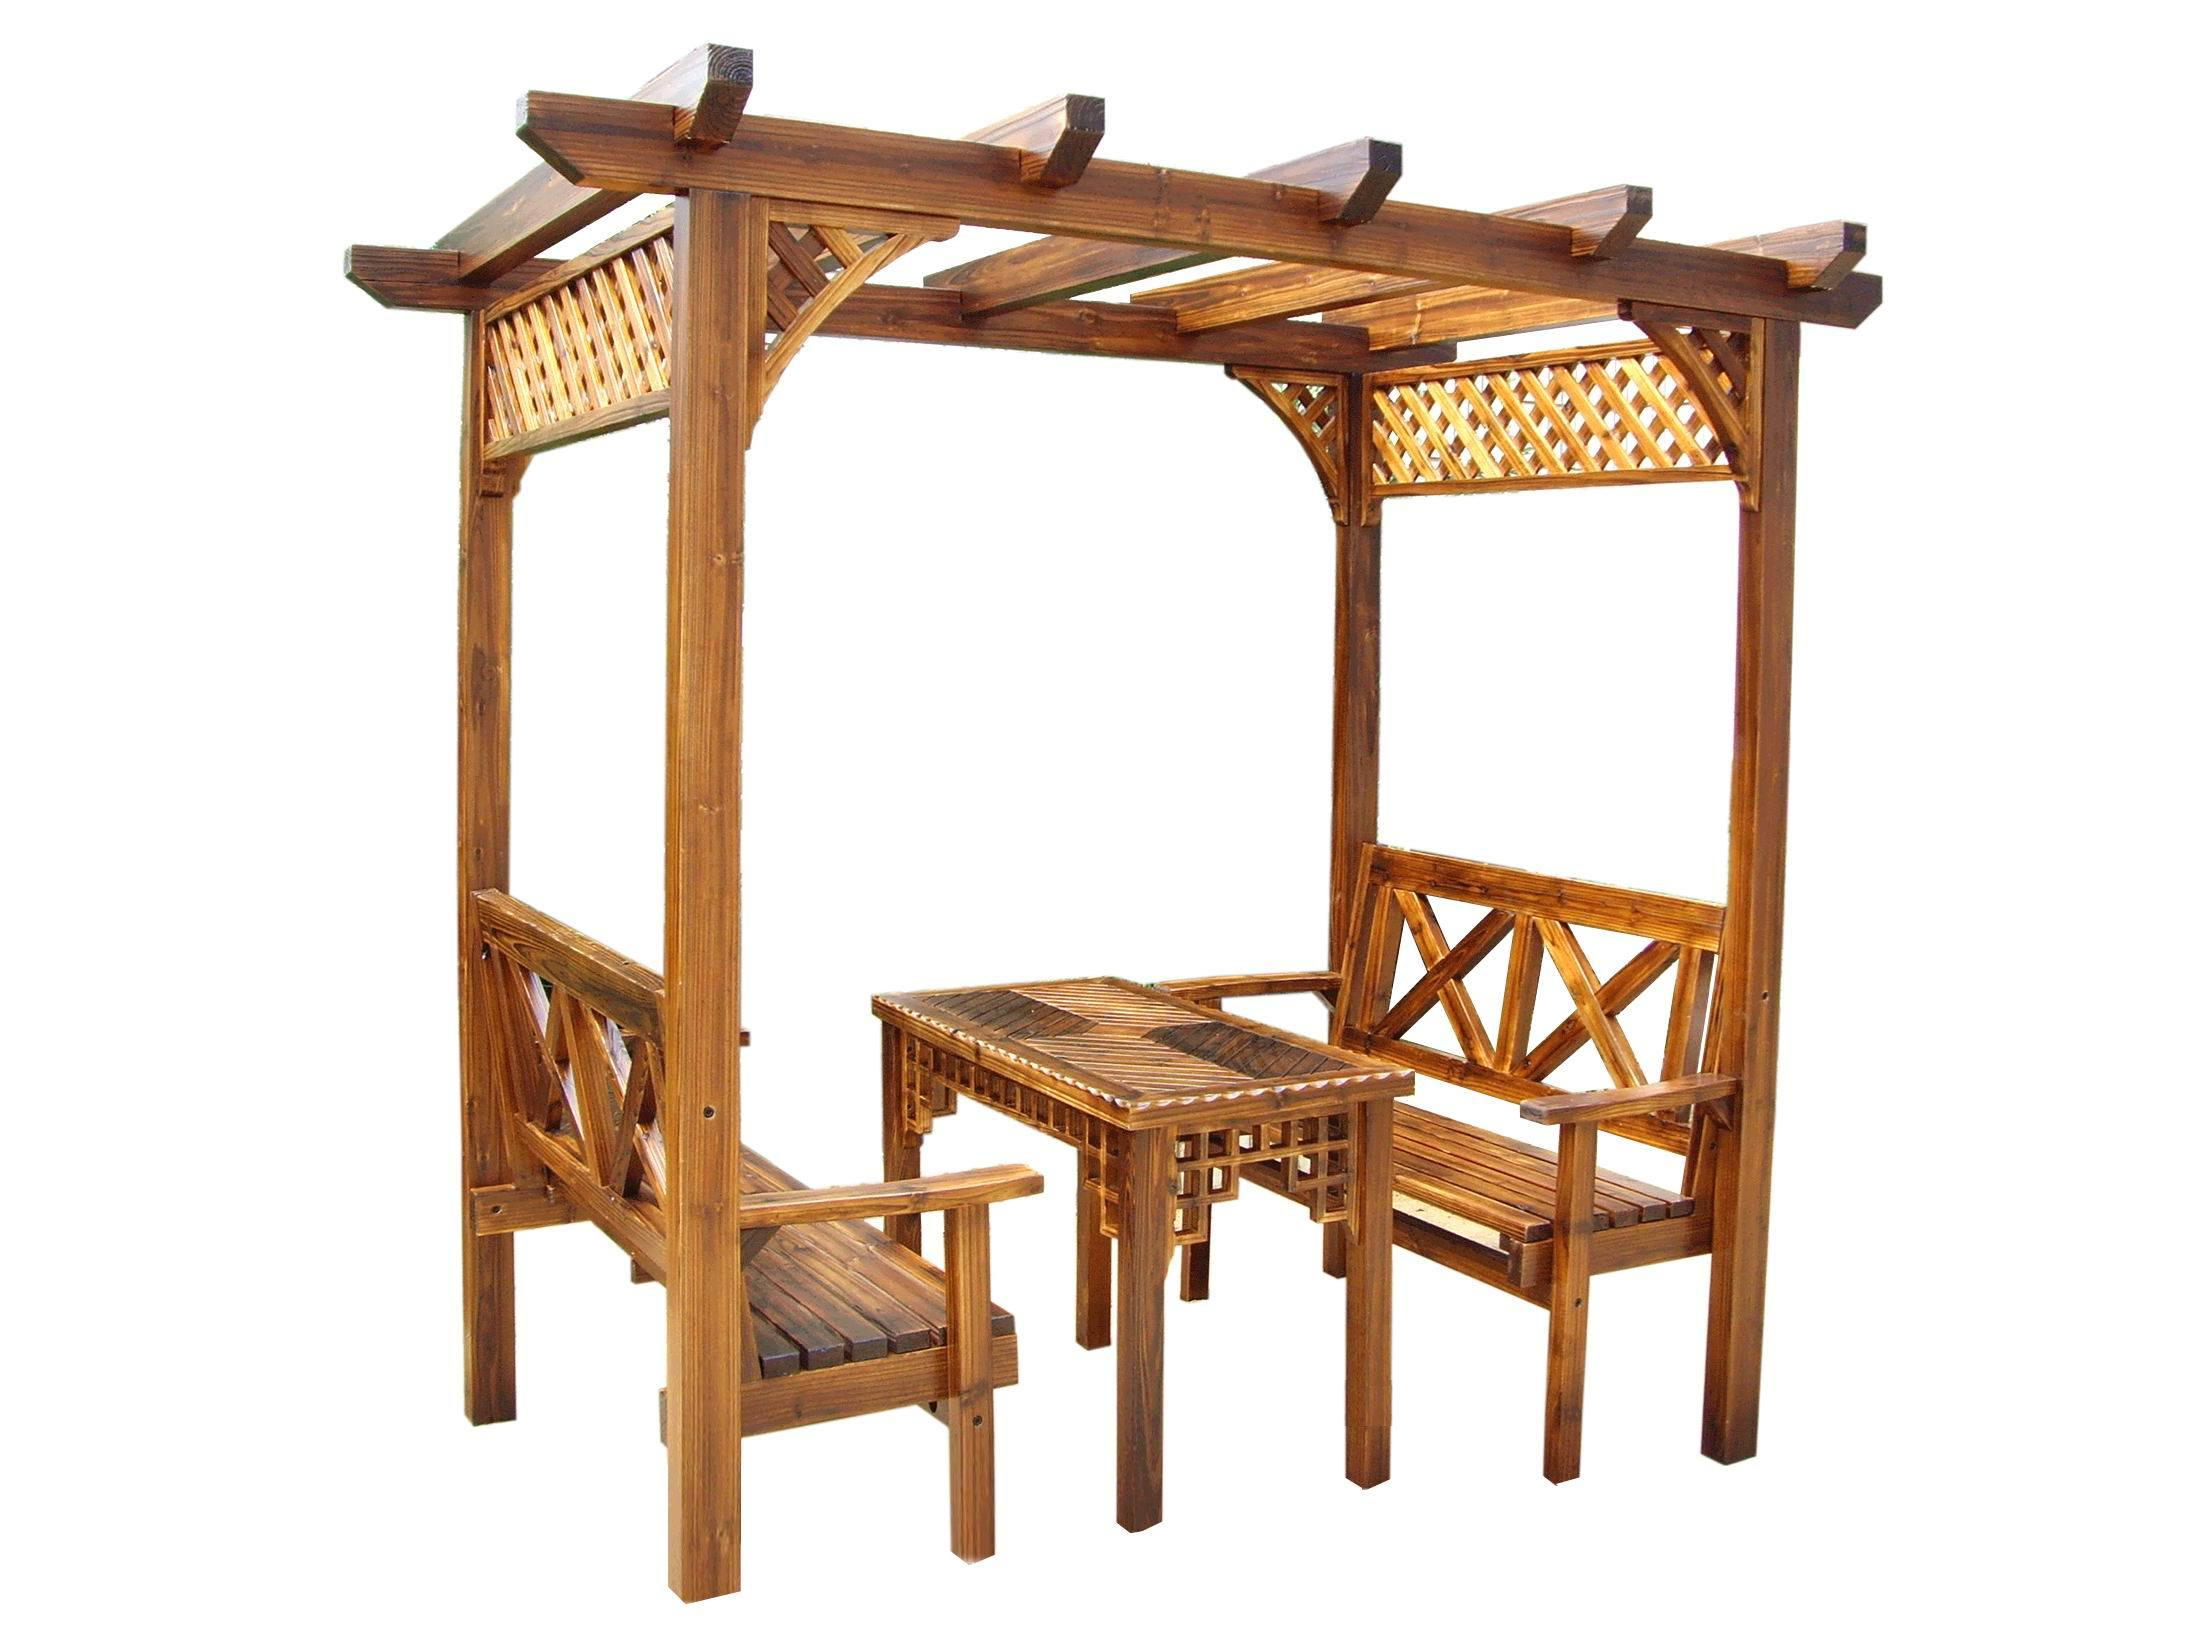 Very Impressive portraiture of Pavilion /Wooden Gazebo / Outdoor Furniture (SC Y009) China Wooden  with #C27E09 color and 2200x1650 pixels